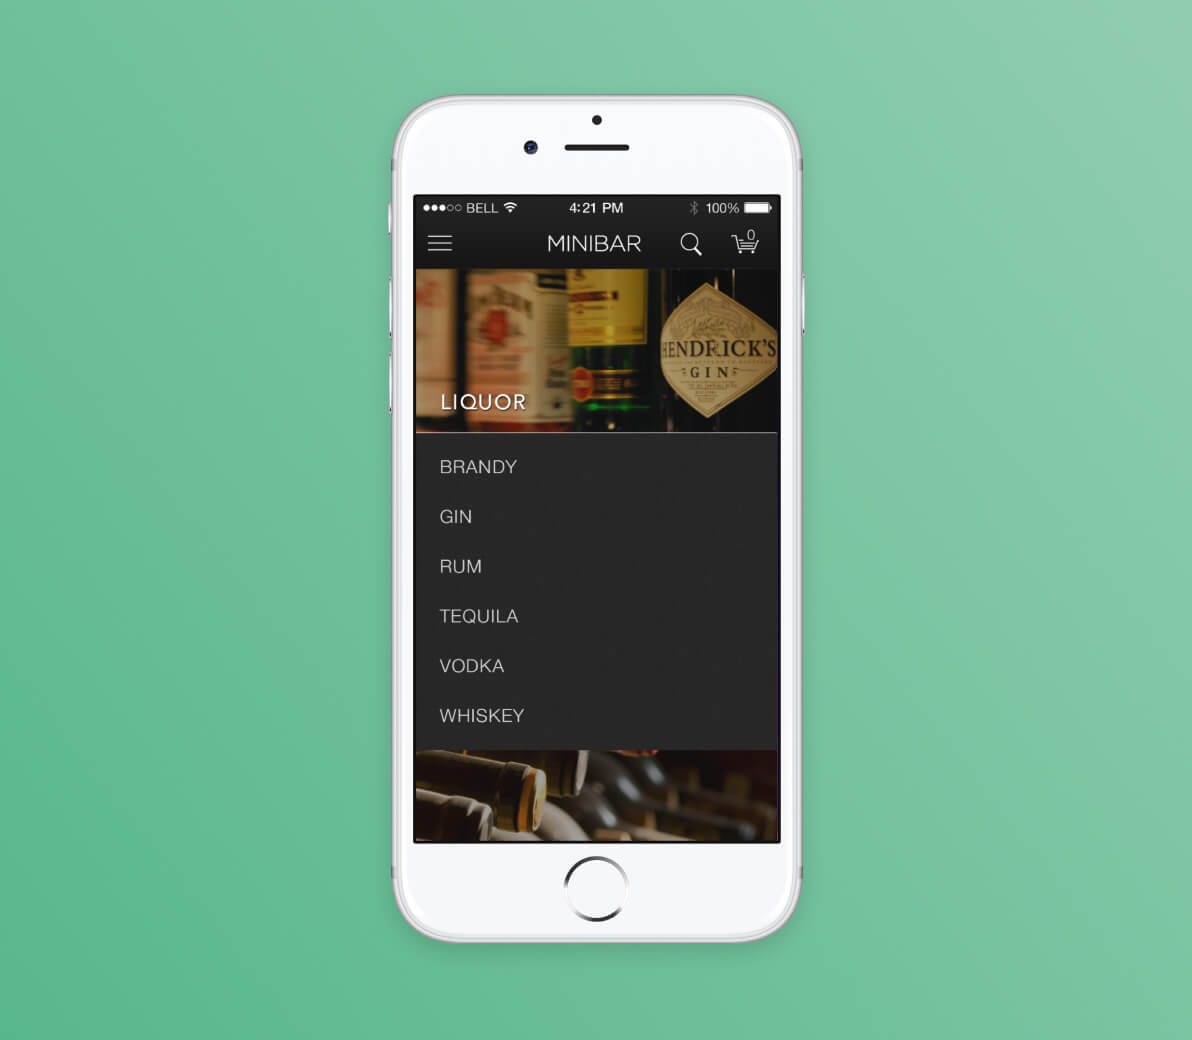 Minibar | Getting Minibar Delivery Delivered